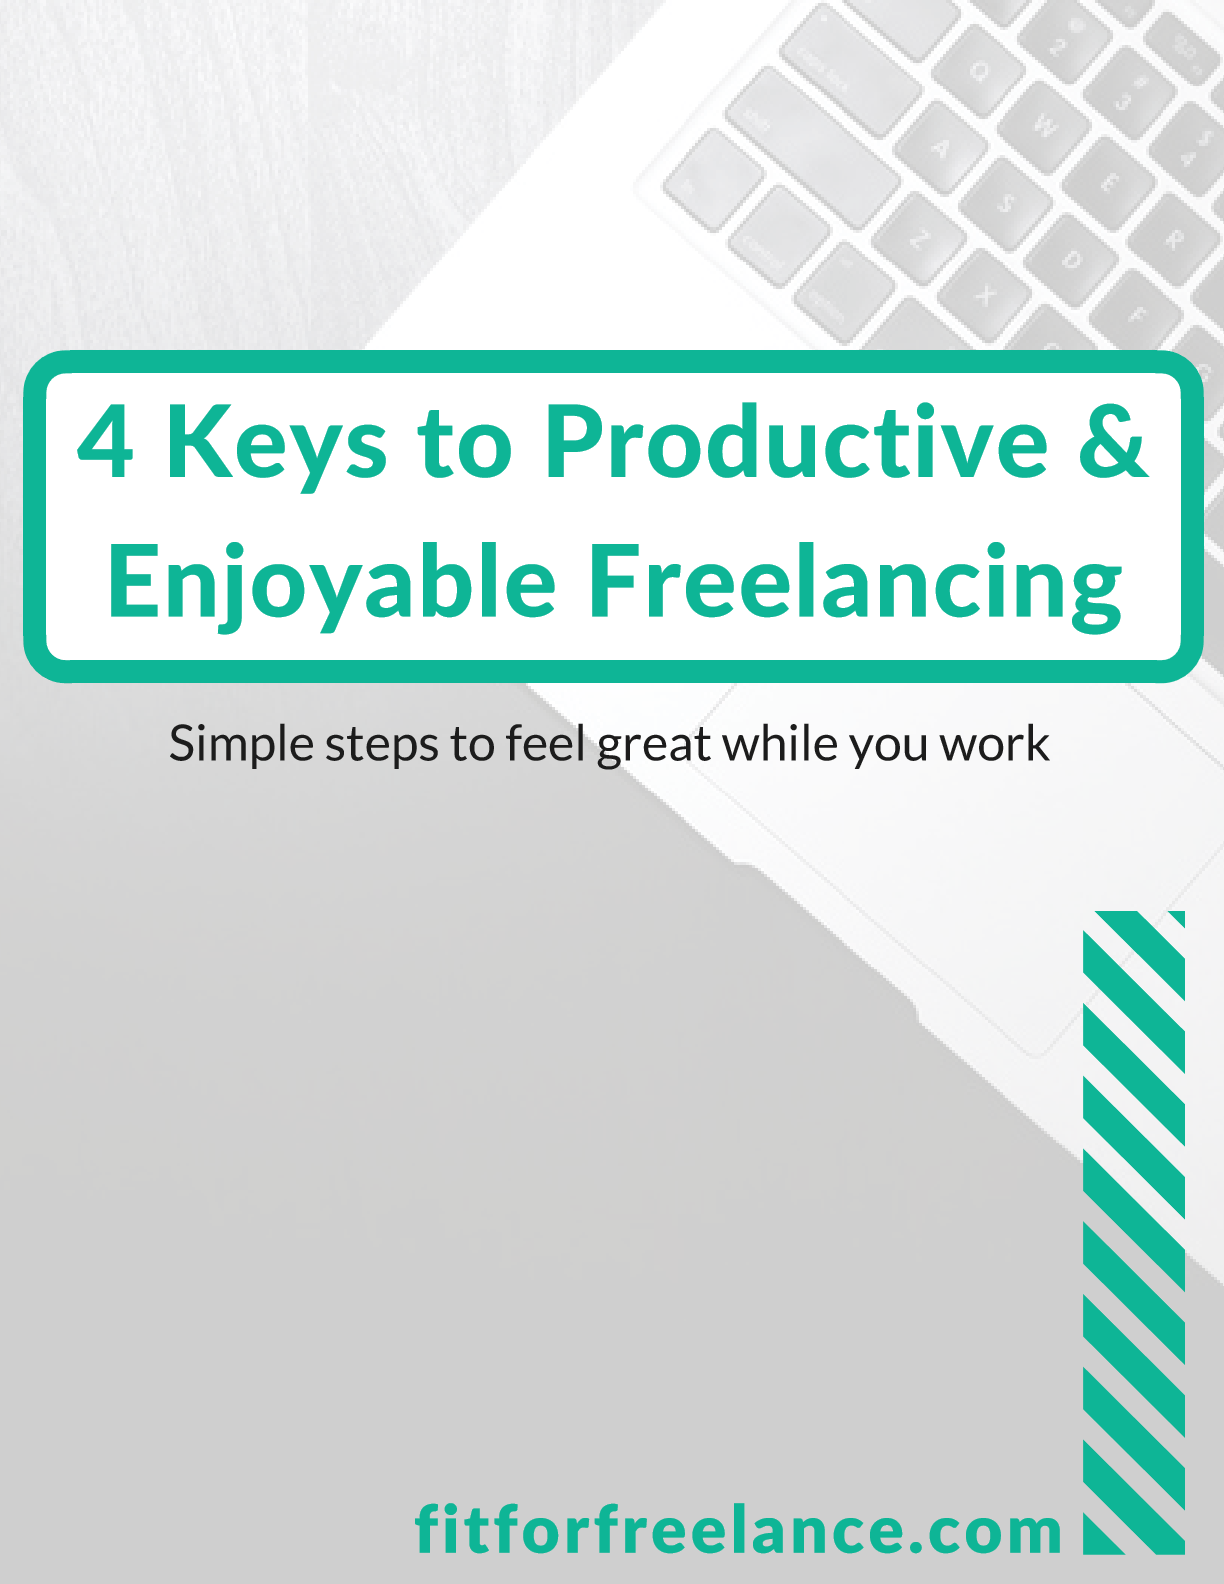 Simple steps to feel great while you work